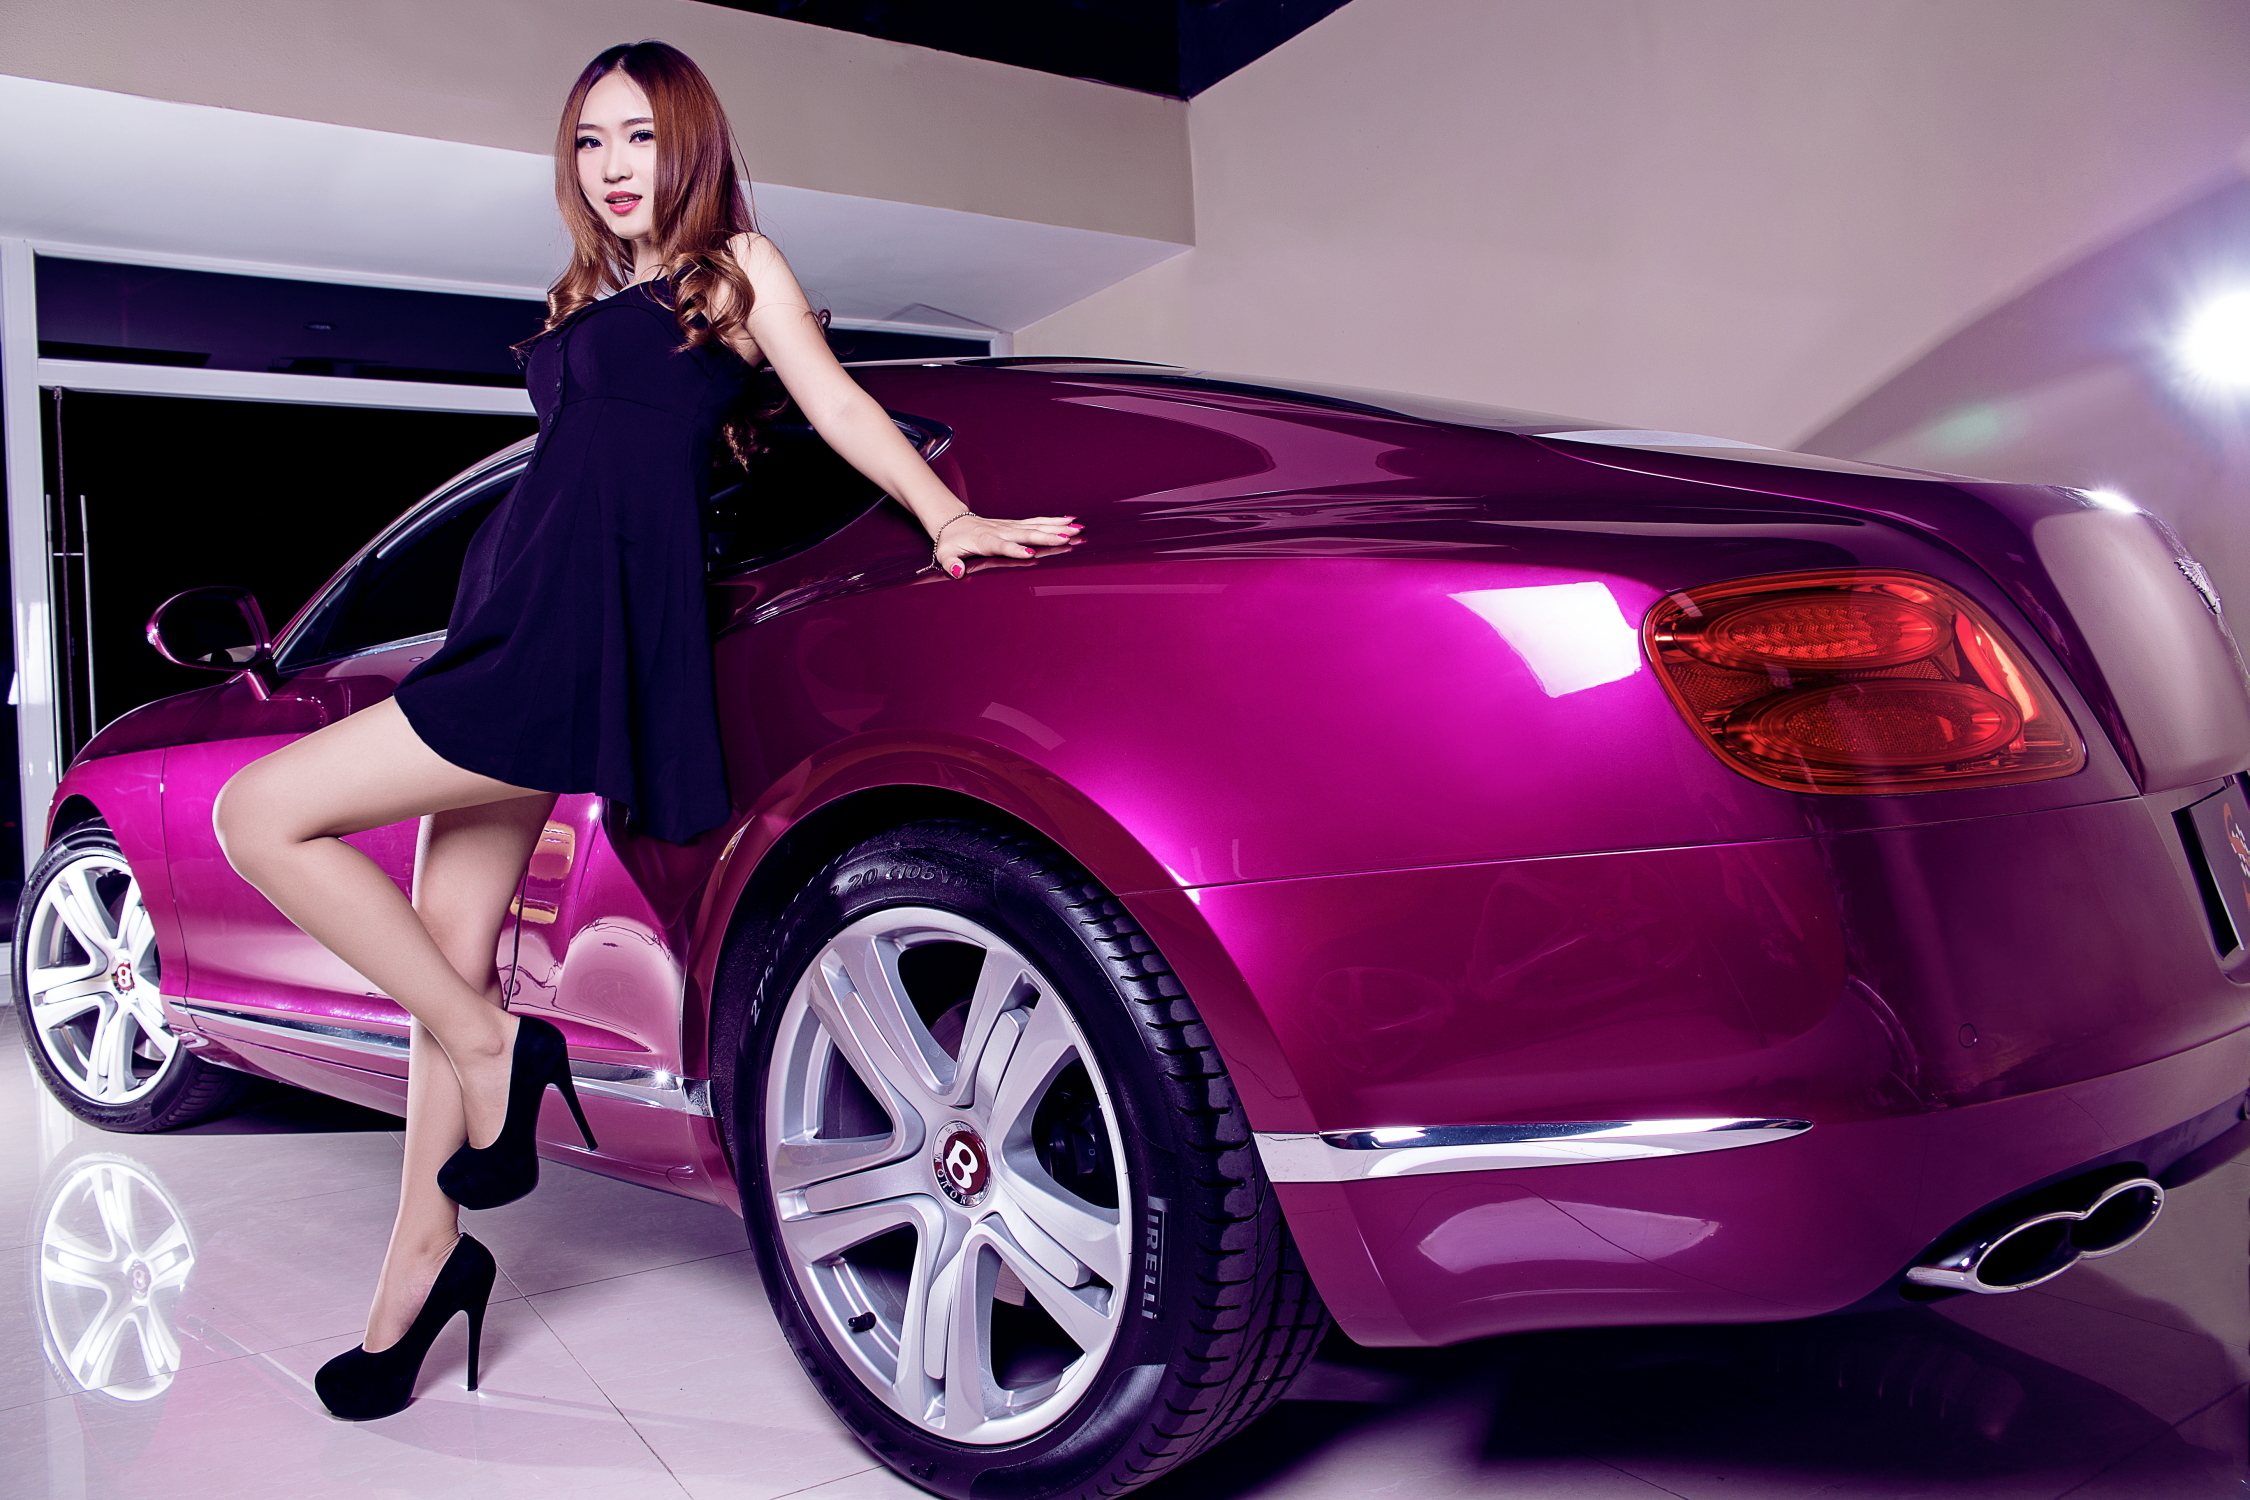 download Car and Cute Girl Wallpapers